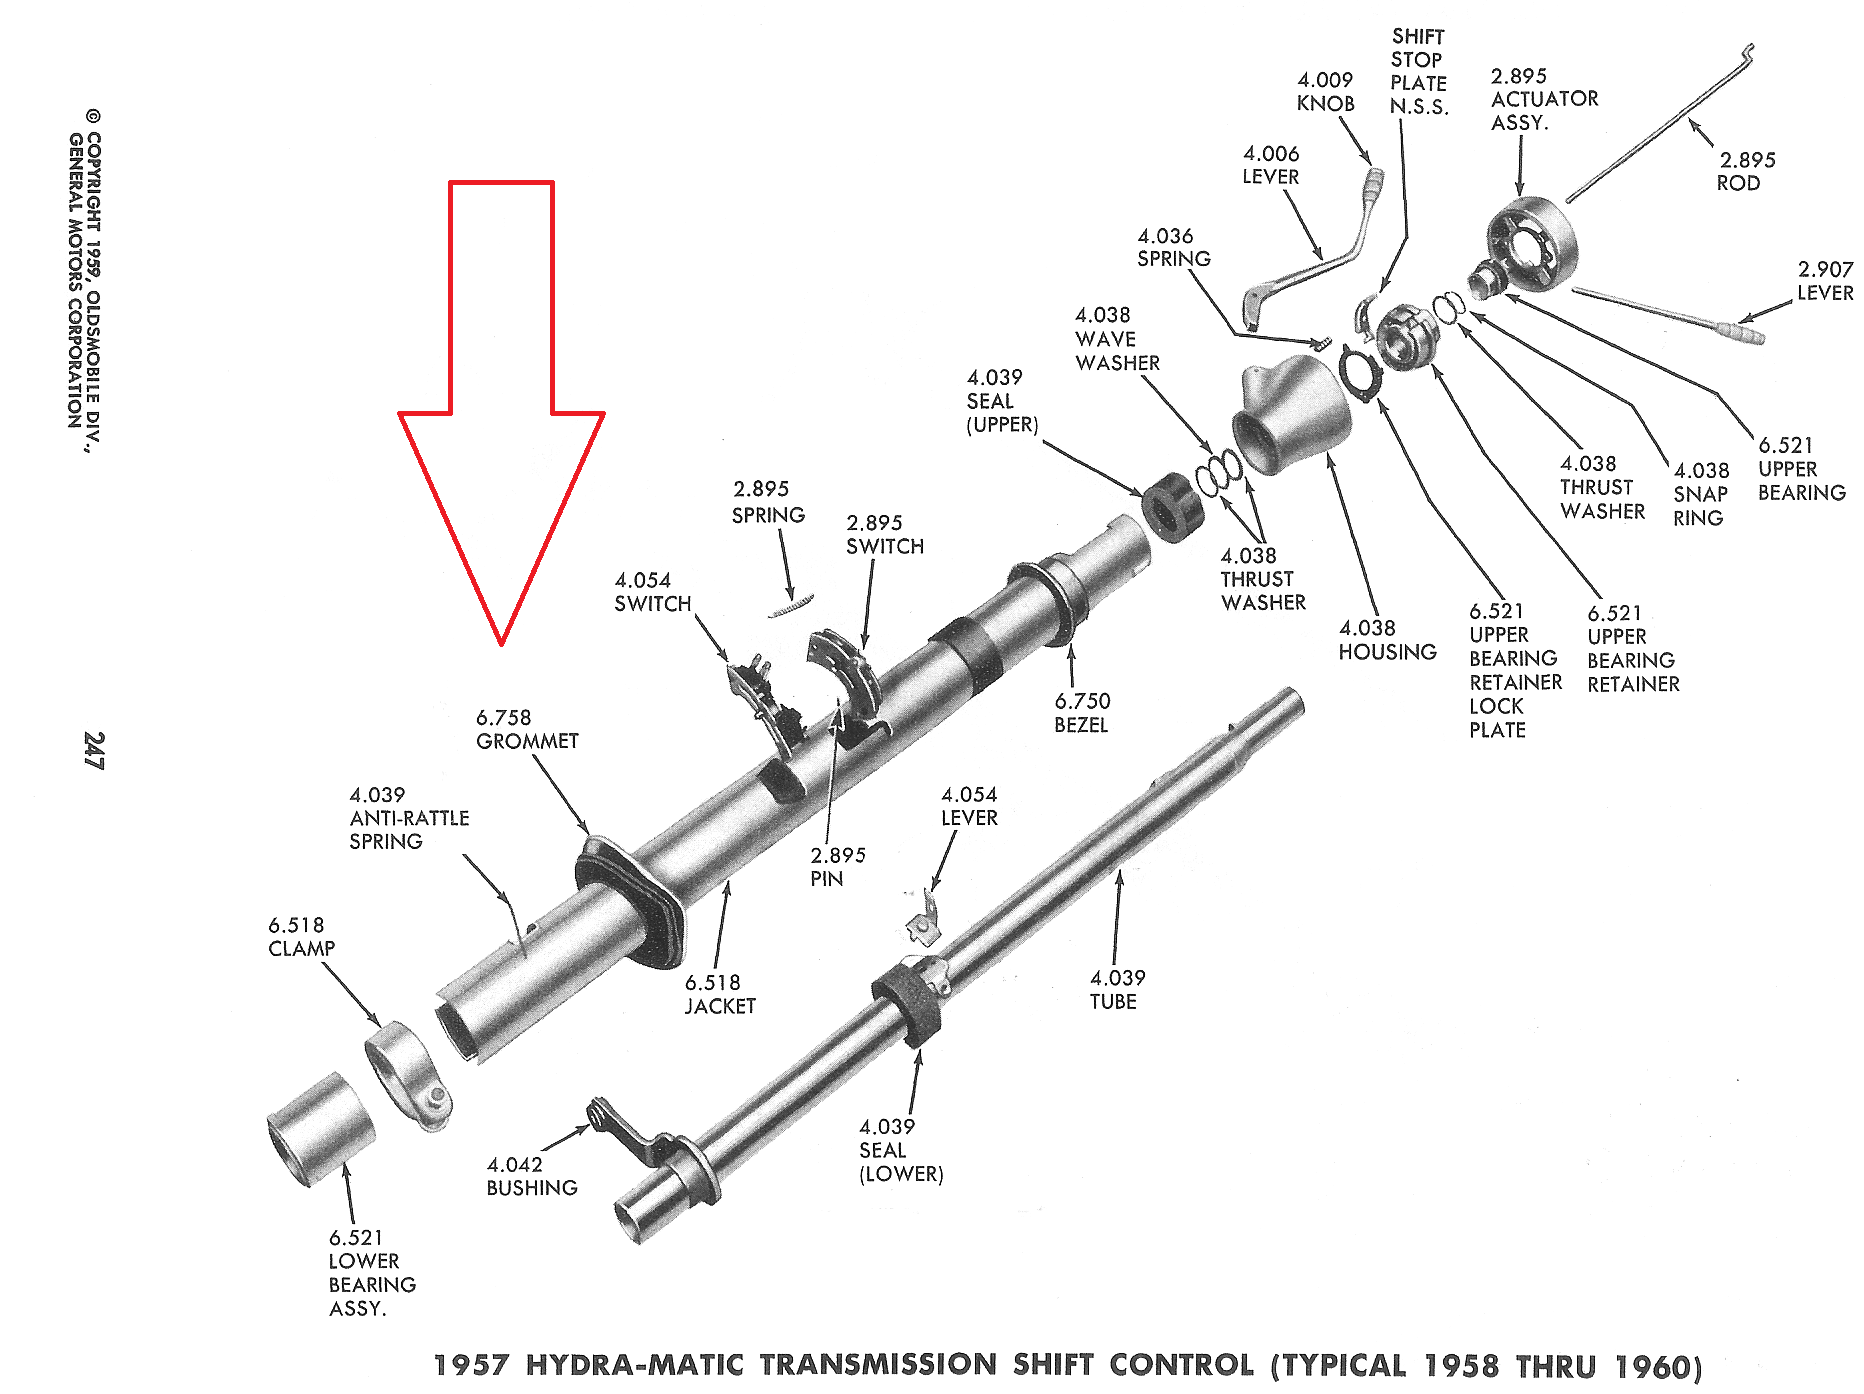 hight resolution of on all of my 1957 s the steering column grommet gasket that goes against the firewall is either deteriorated or missing on two cars only the metal plate